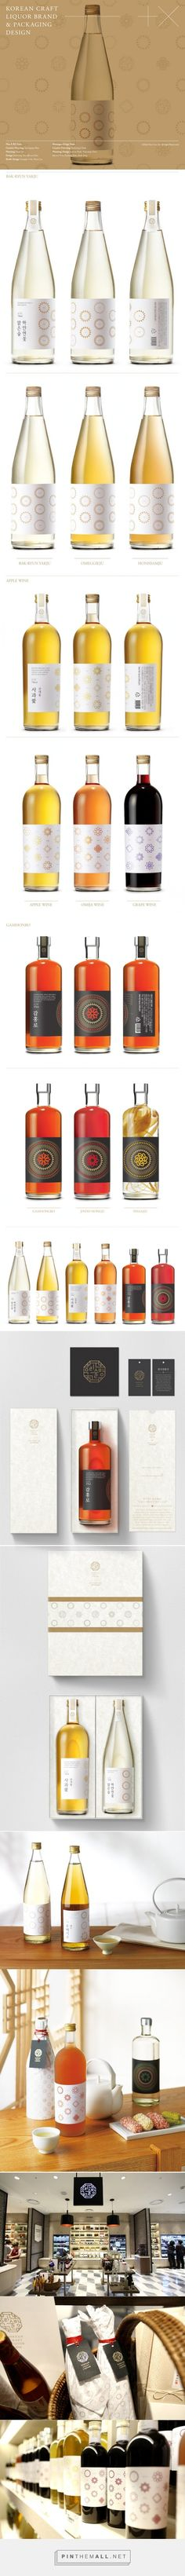 Shinsegae Traditional #Liquor #packaging designed by Plus X & Shinsaegae design team - http://www.packagingoftheworld.com/2015/03/shinsegae-traditional-liquor.html